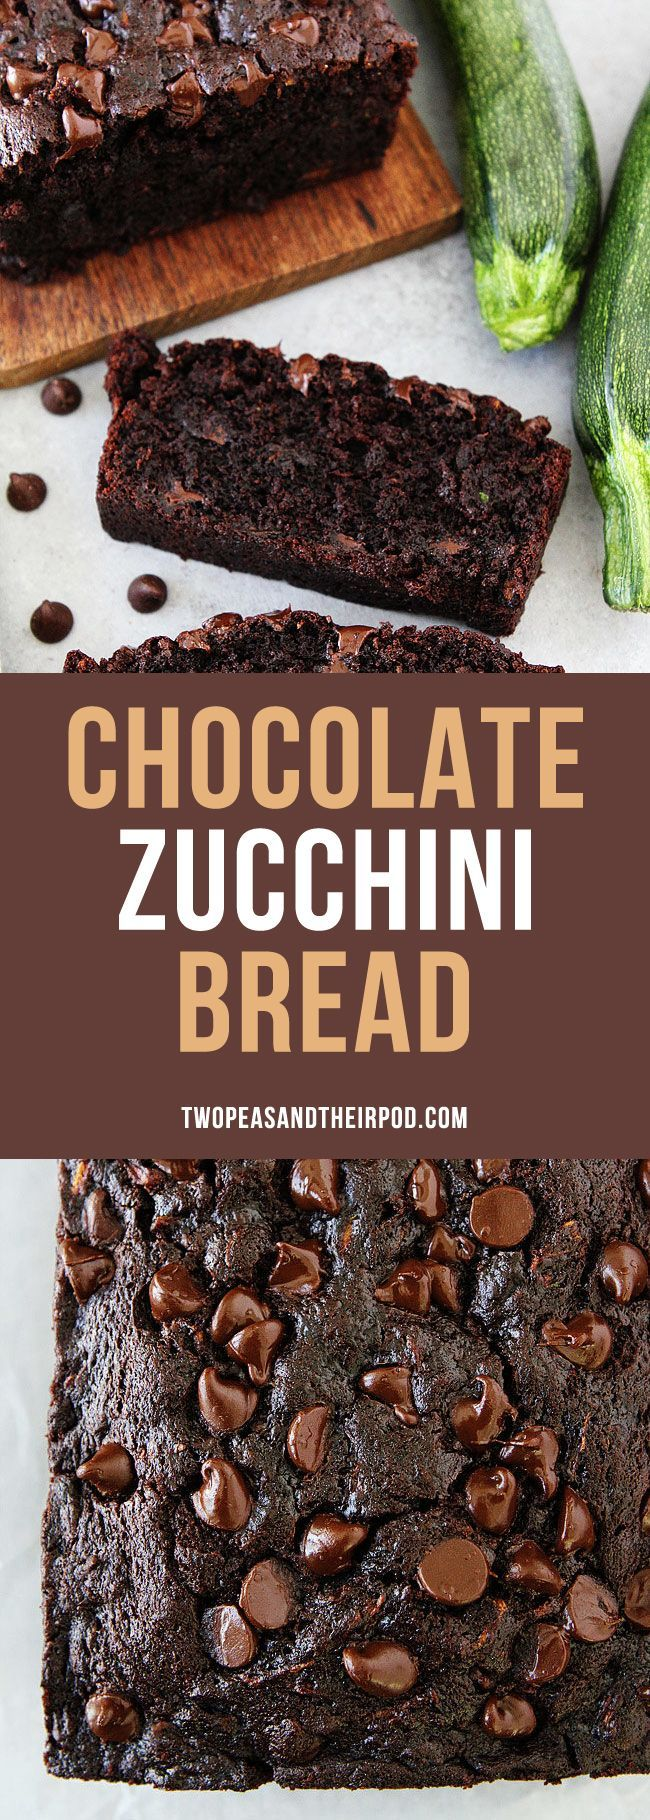 Chocolate Zucchini Bread-this is the BEST zucchini bread recipe. It is easy to make and tastes like chocolate cake! Use your summer zucchini to make this easy quick bread. It is guaranteed to be a family favorite!